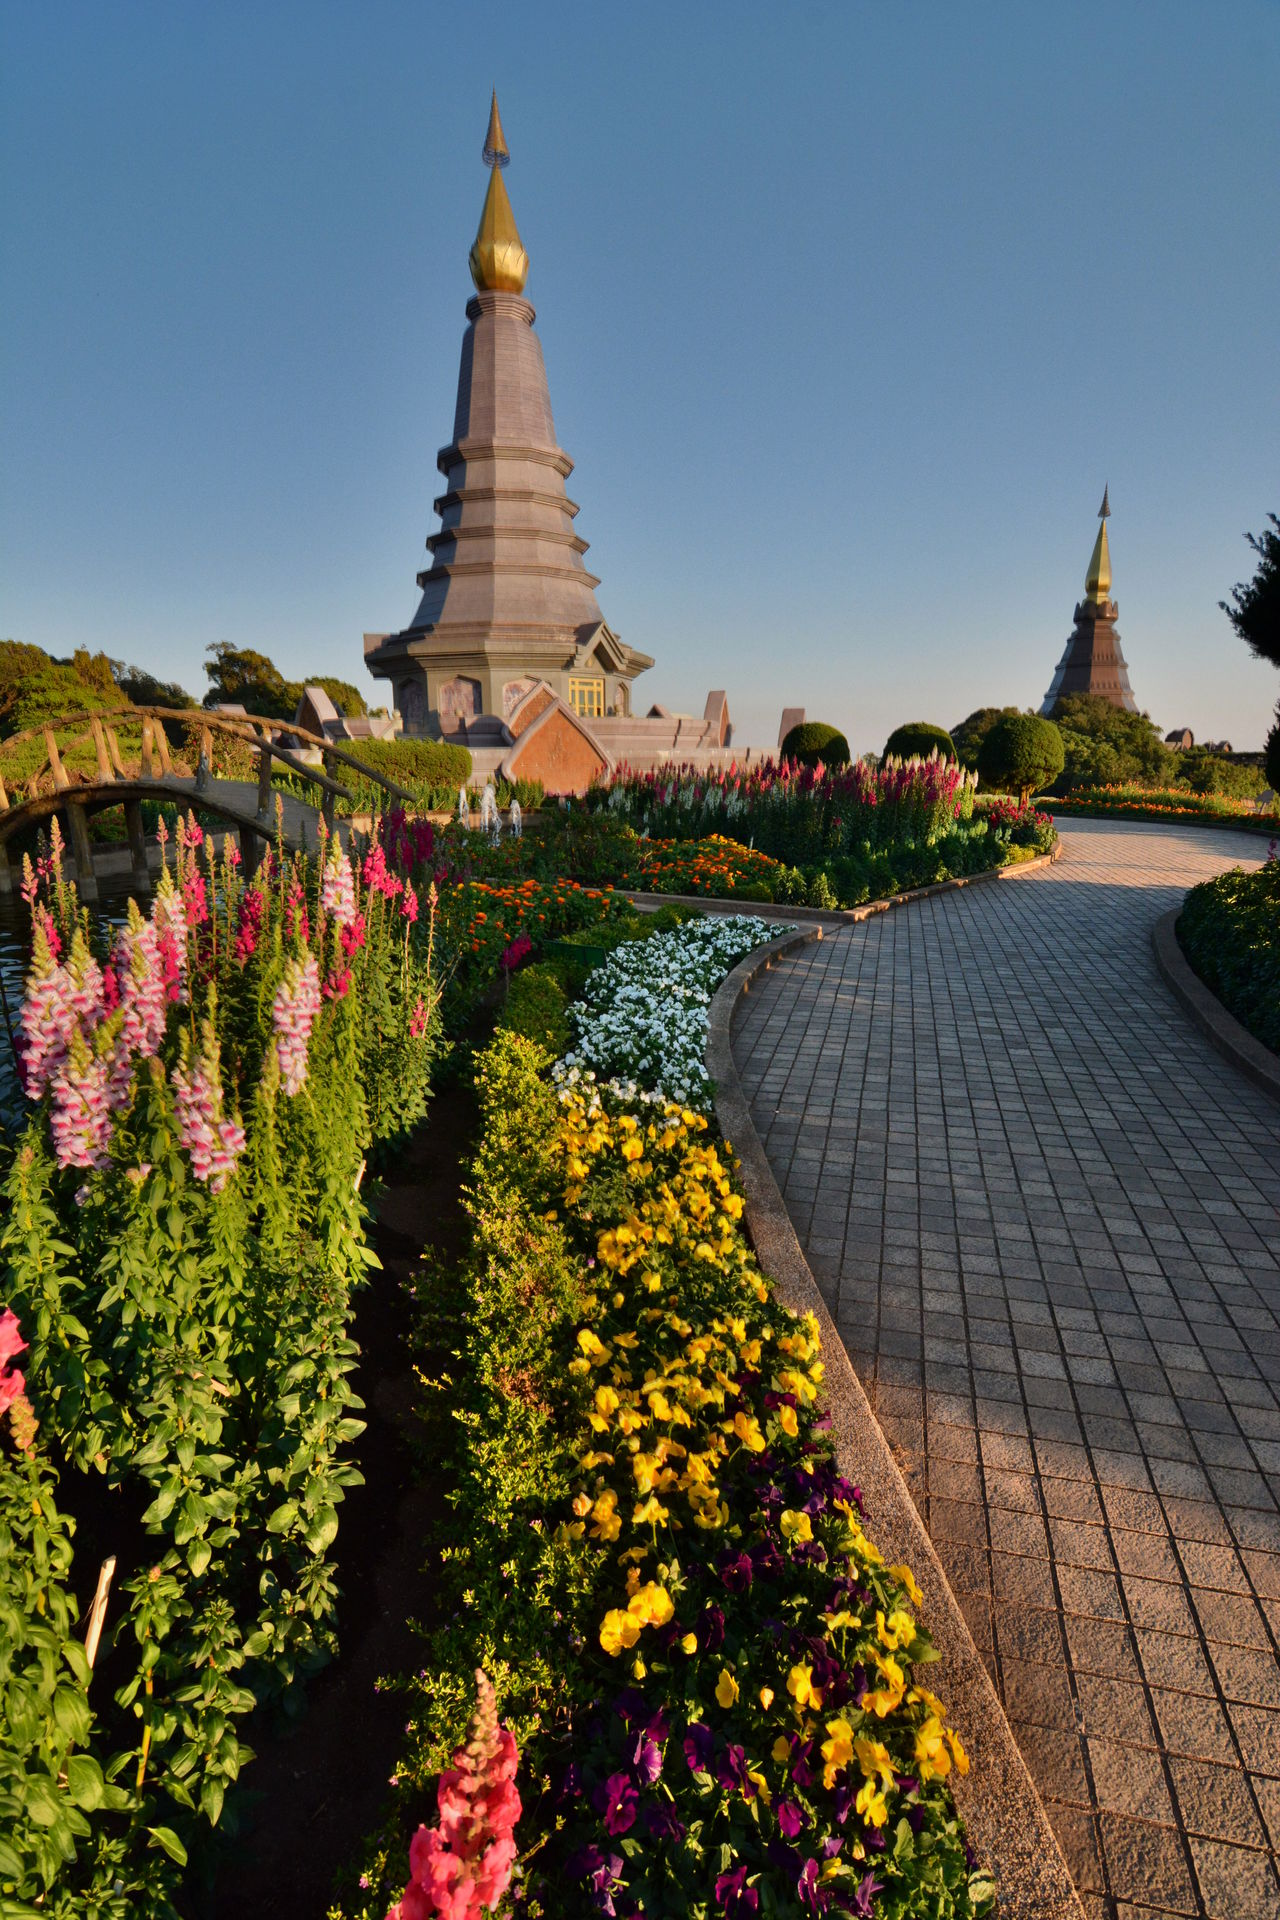 Two chedis near the summit of Doi Inthanon. Chiang Mai province. Thailand Architecture Buddhism Building Exterior Built Structure Chedi Chiang Mai Chiang Mai Province Doi Inthanon Doi Inthanon National Park EyeEm Thailand Flower Highest Mountain Mountain Naphamethinidon Naphaphonphumisiri Nature No People Outdoors Spirituality Thai Thai Mountain Thailand Tourism